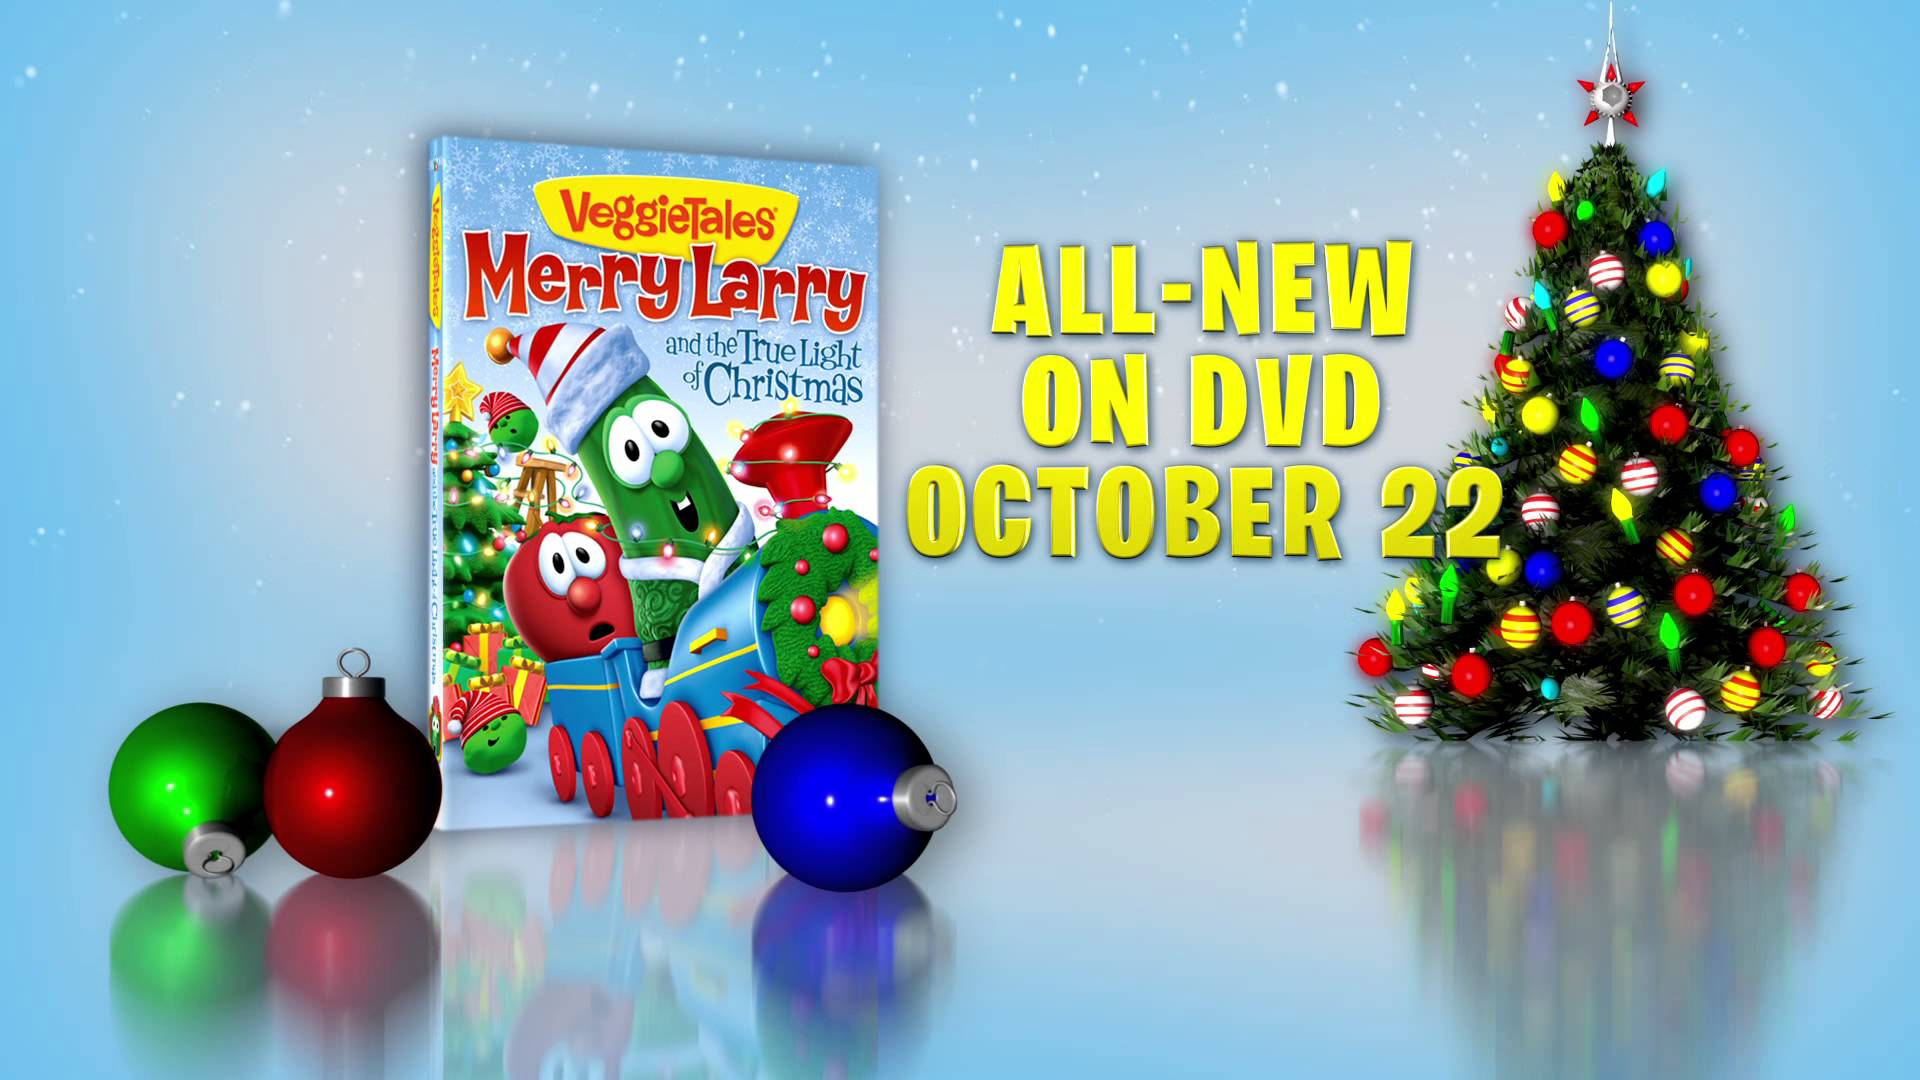 Veggie Tales – Merry Larry and the True Light of Christmas